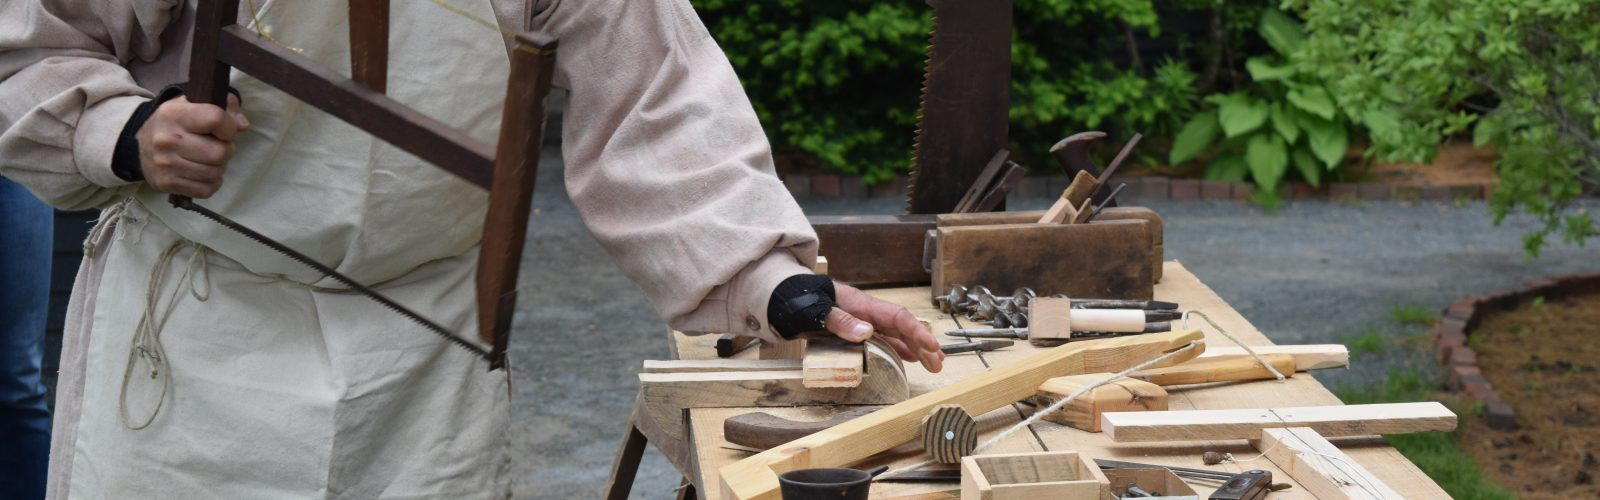 18th century carpentry demonstration